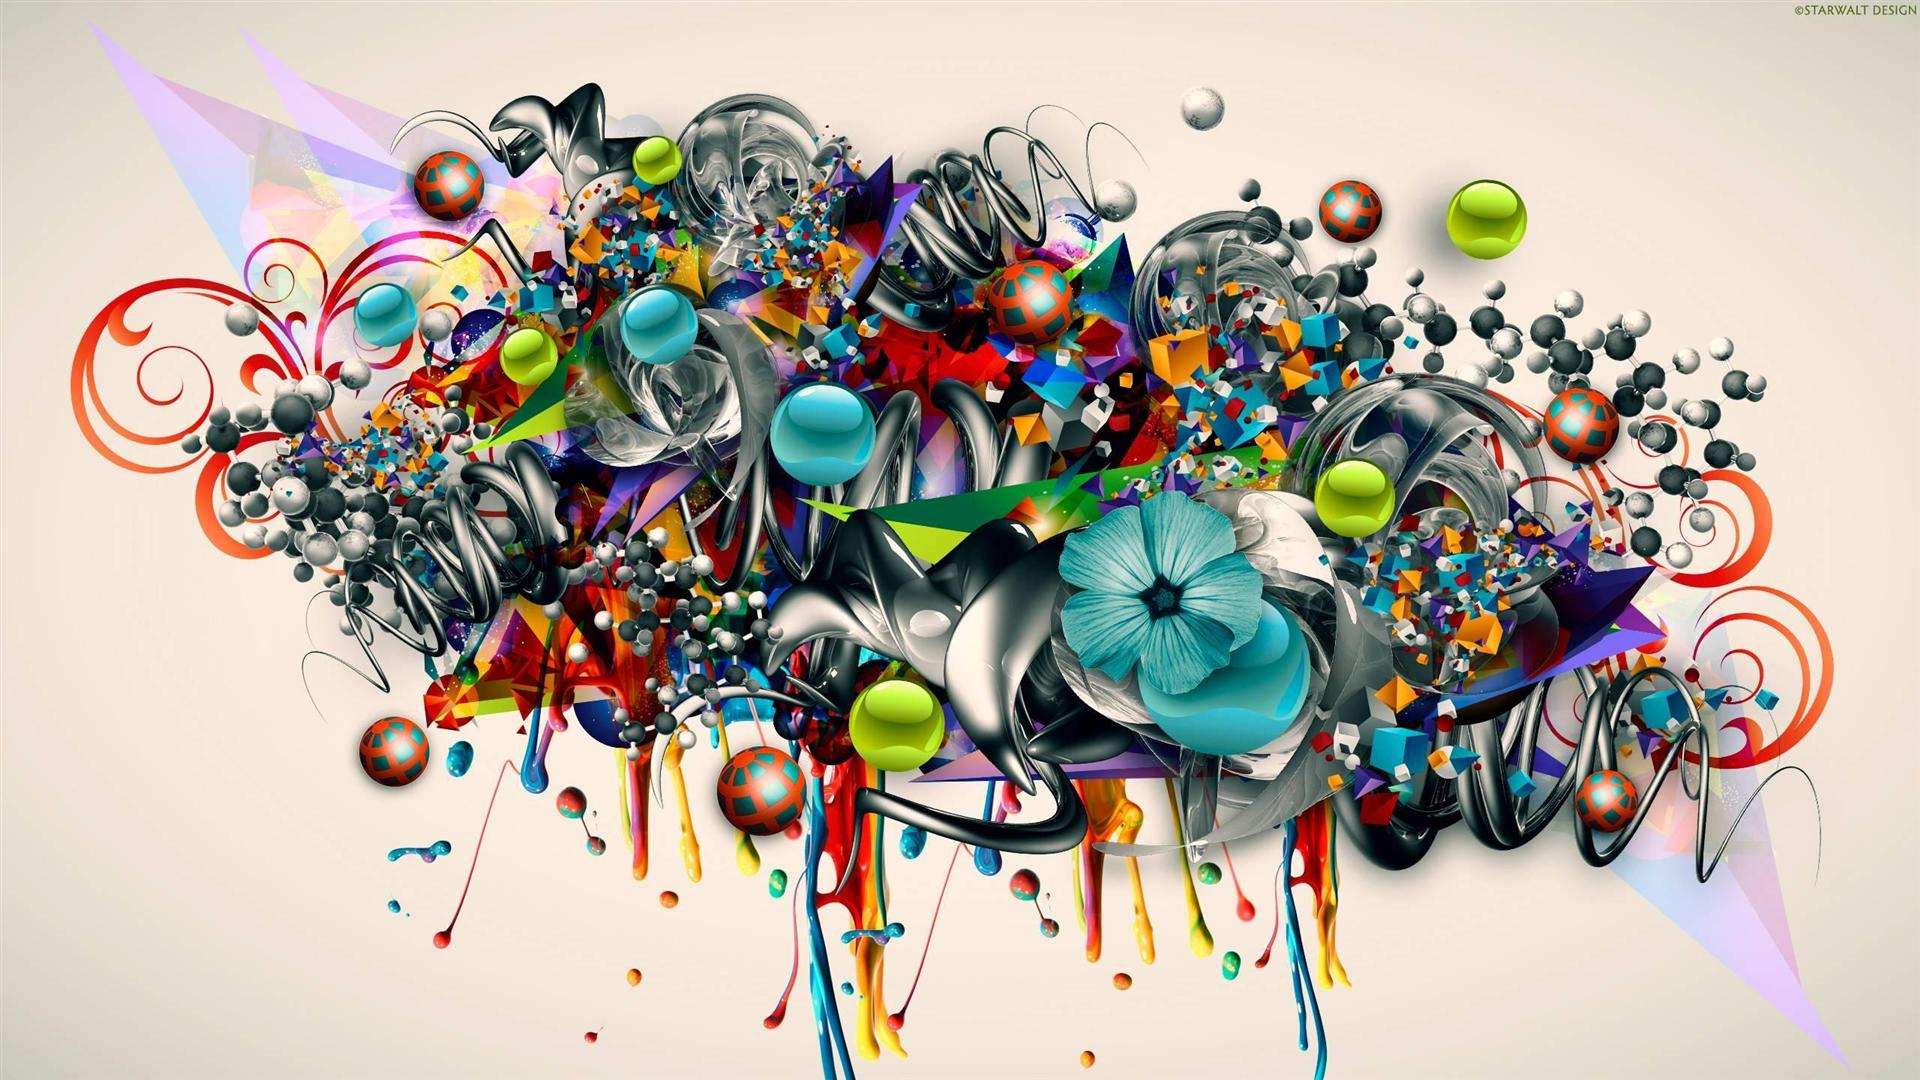 Hp Wallpaper Hd 1920x1080 35 Handpicked Graffiti Wallpapers Backgrounds For Free